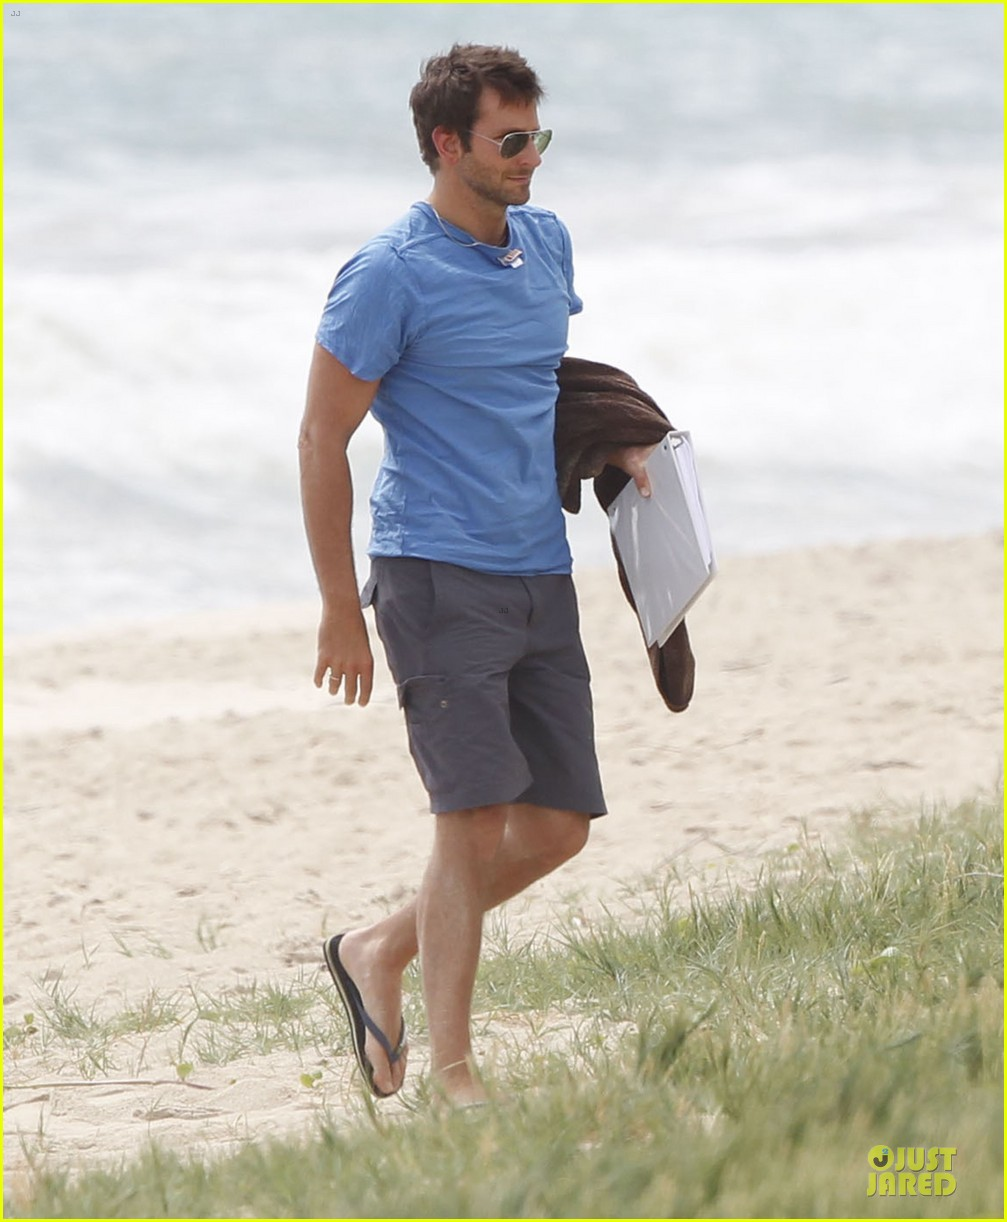 bradley cooper shirtless relaxing beach stud in hawaii 01